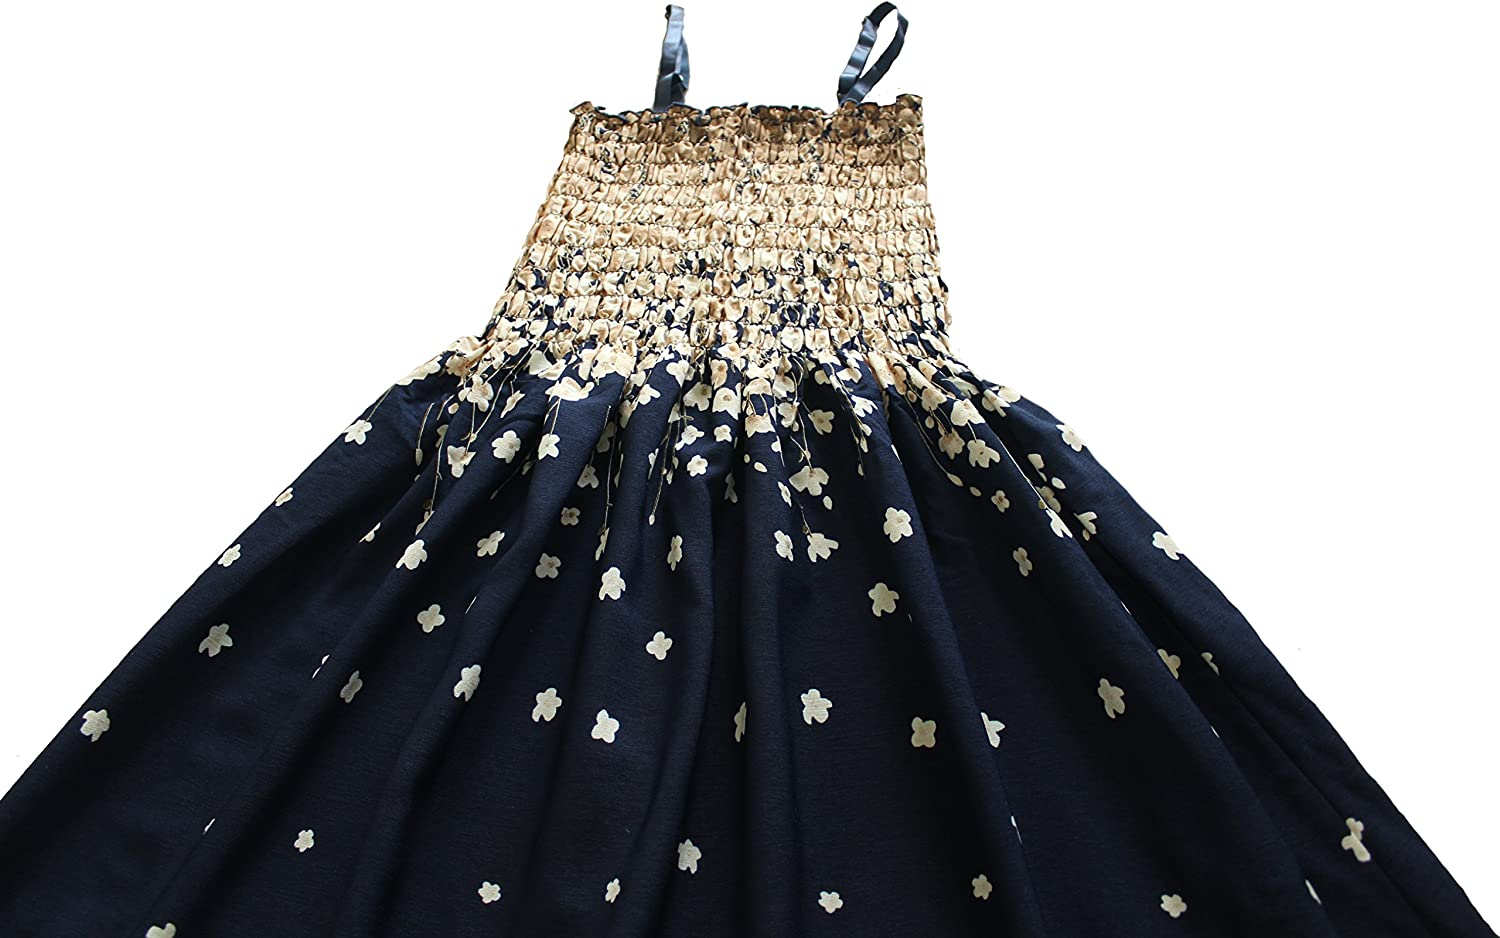 Women Maxi Floral Summer Dress Party Cocktail Boho Plus Size Casual Navy Smocked